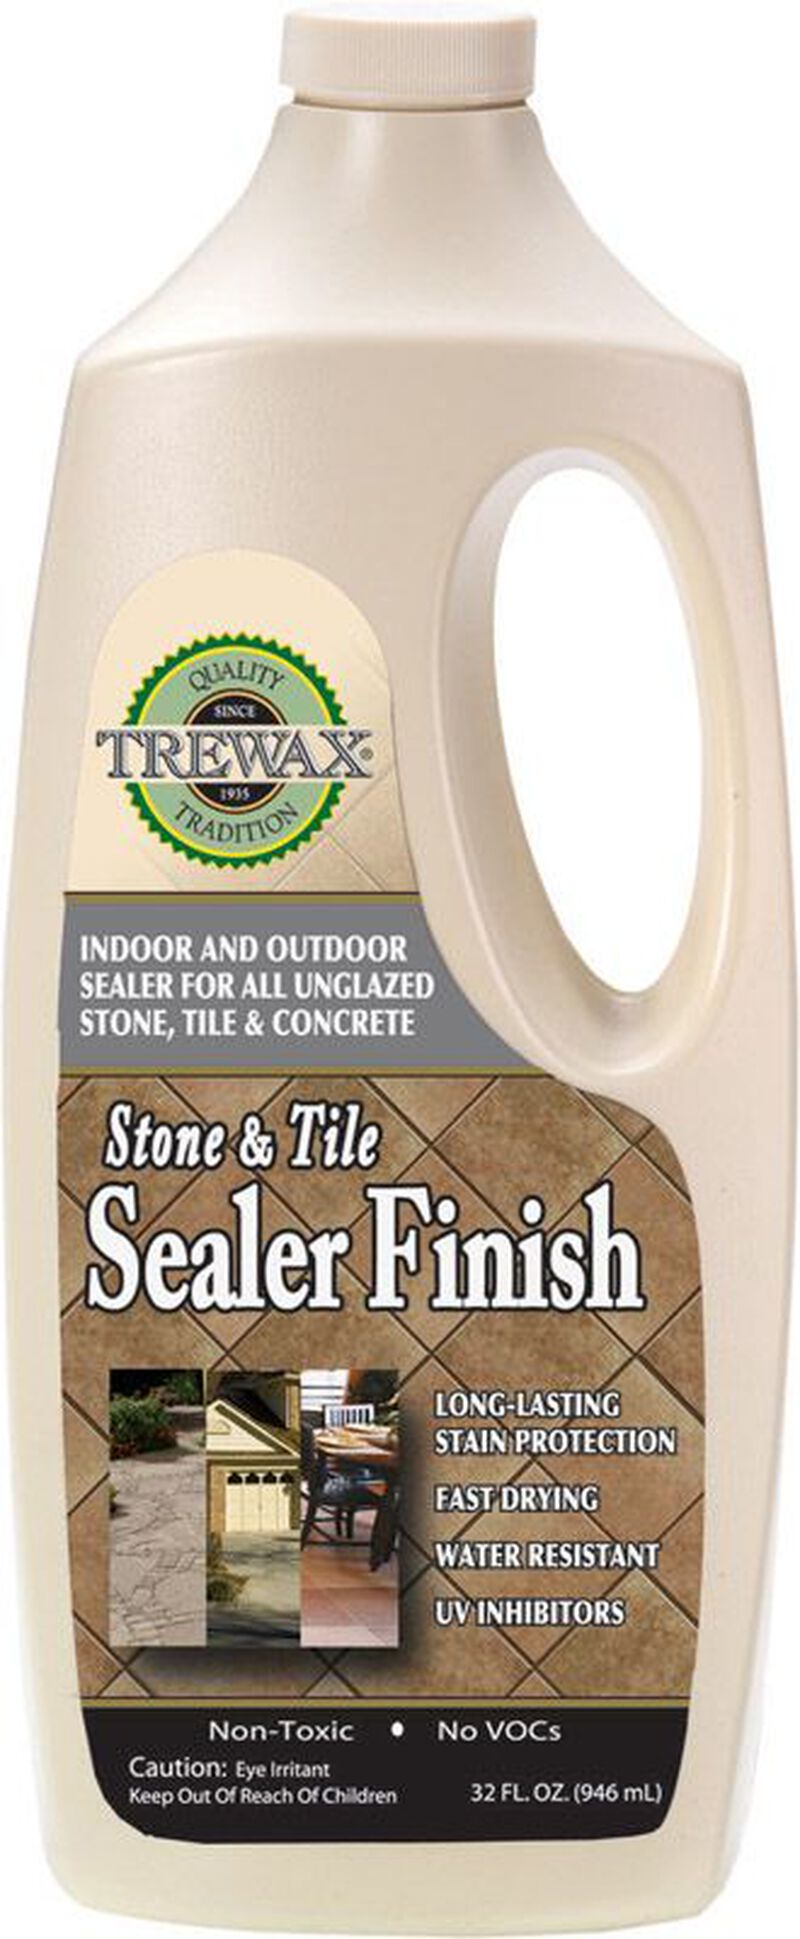 Trewax Stone And Tile Sealer Finish Acrylic Urethane 32 Oz